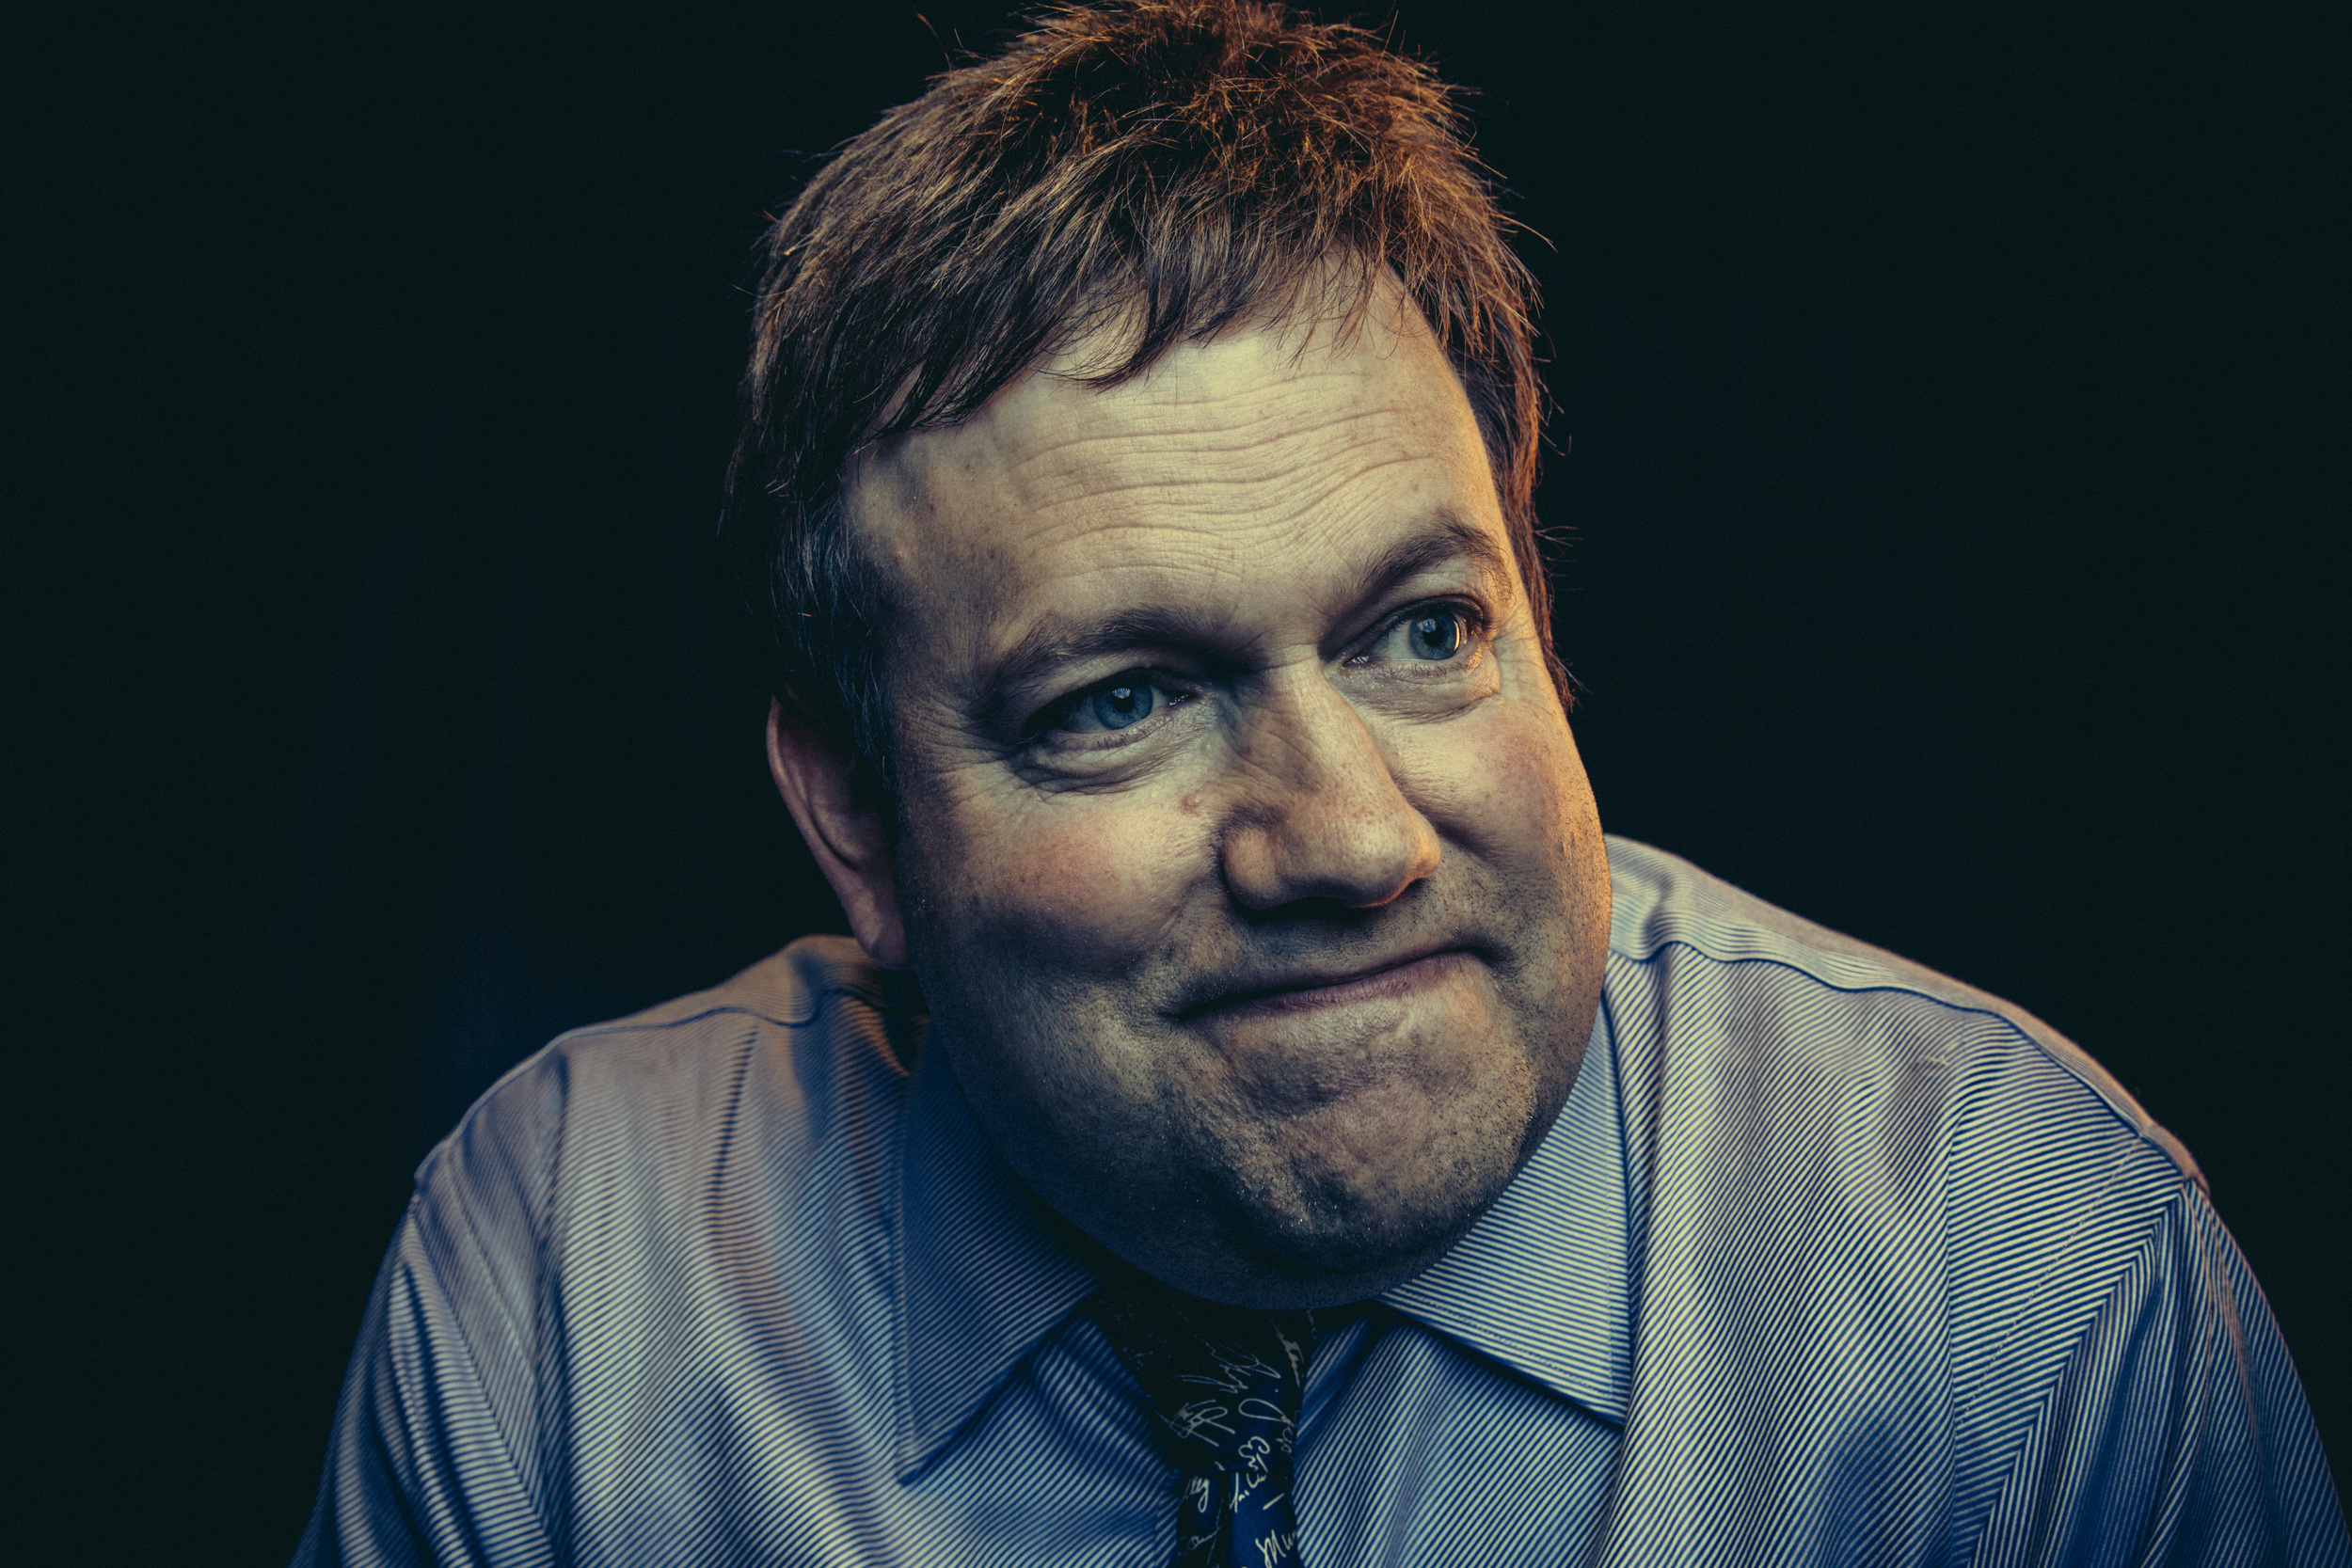 Republican Strategist Frank Luntz